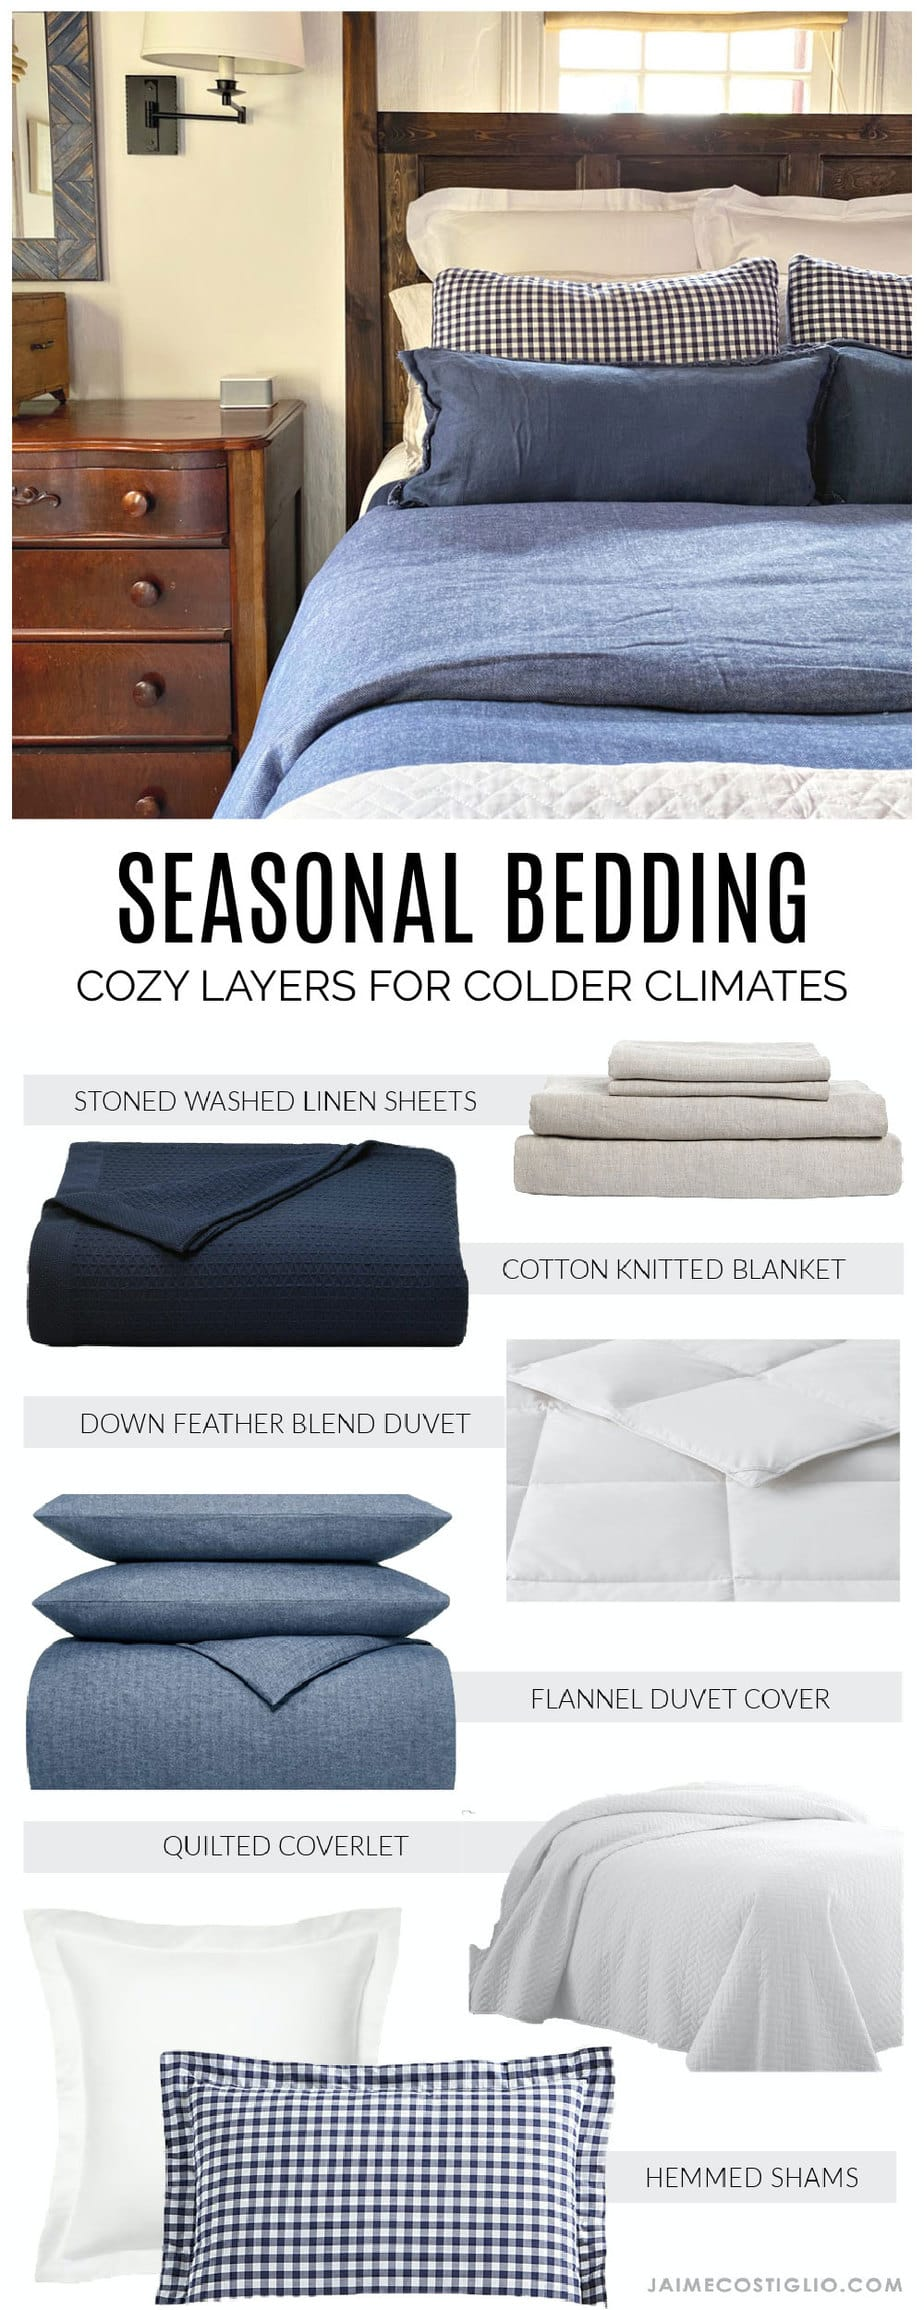 seasonal bedding for colder climates